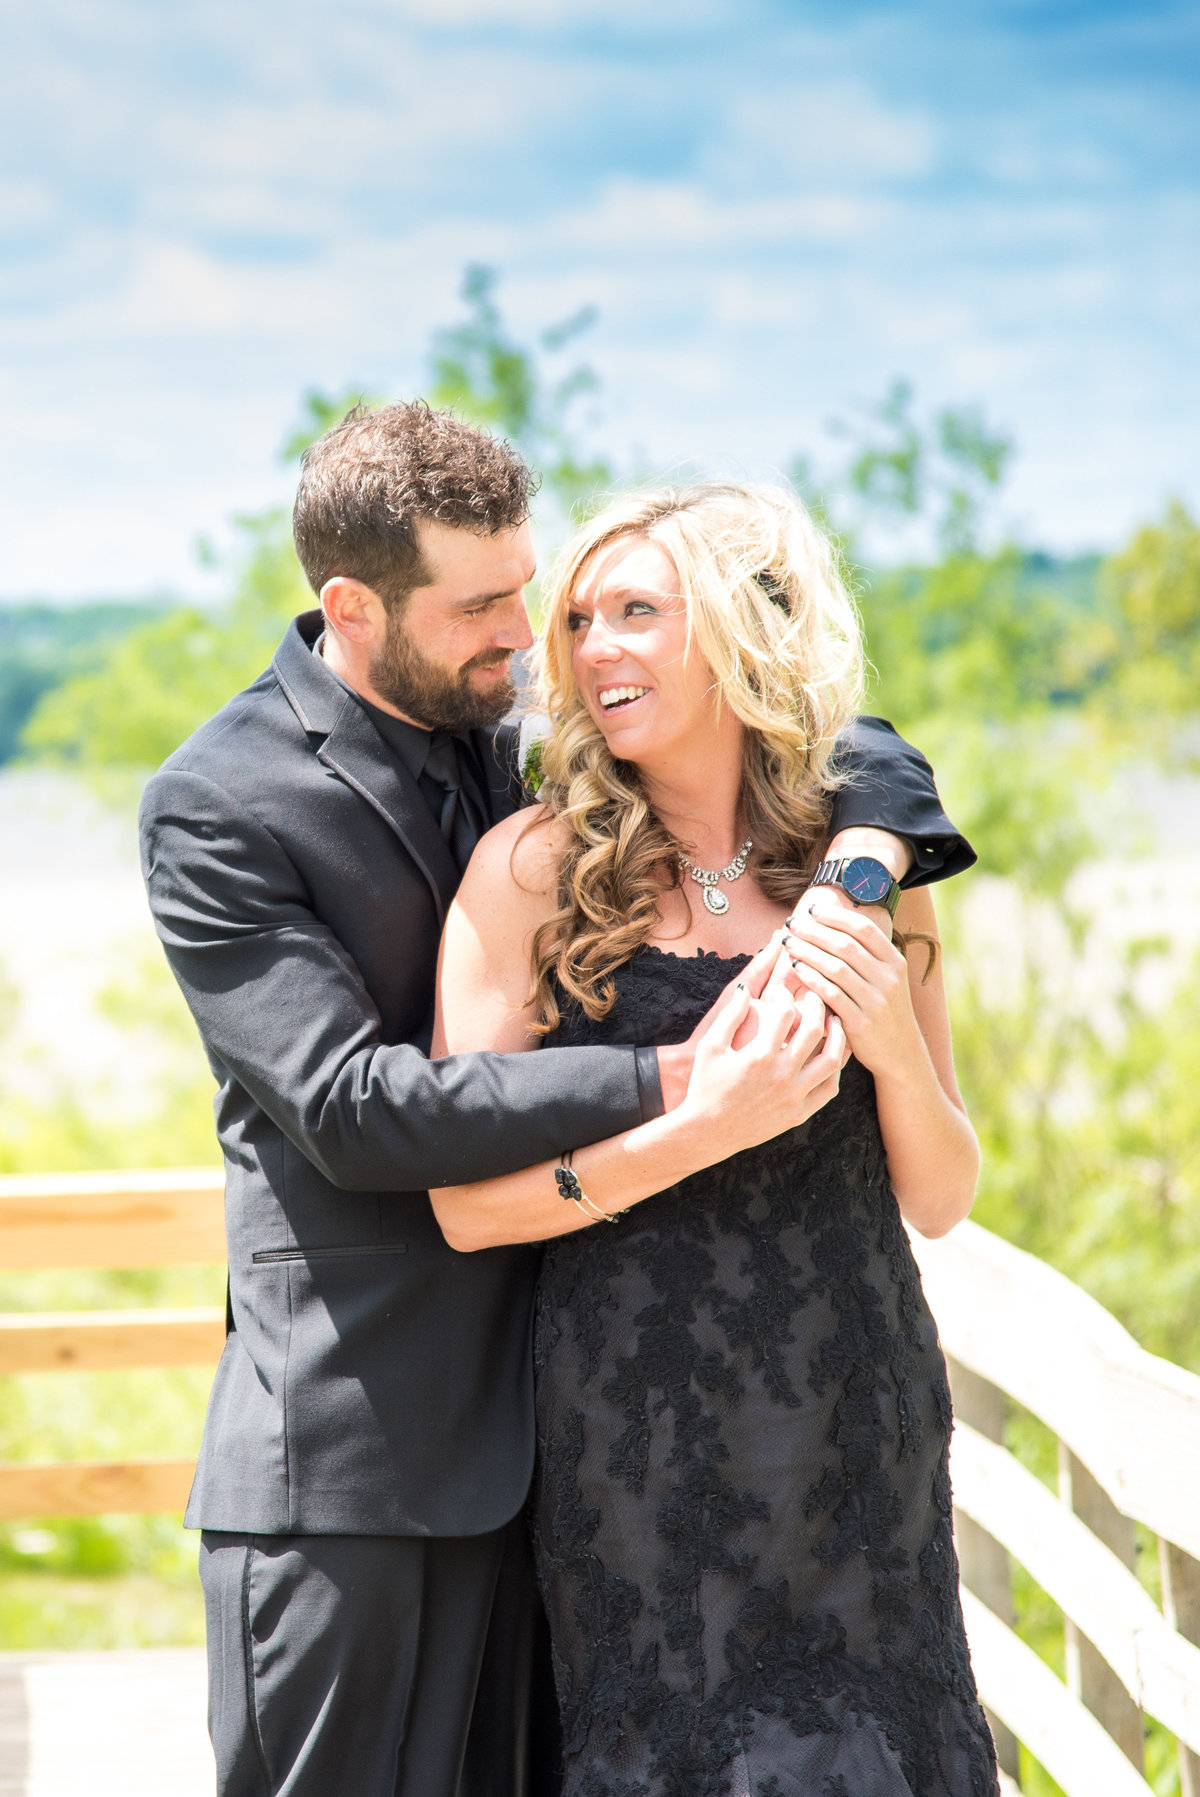 danielle kristine photography-weddings